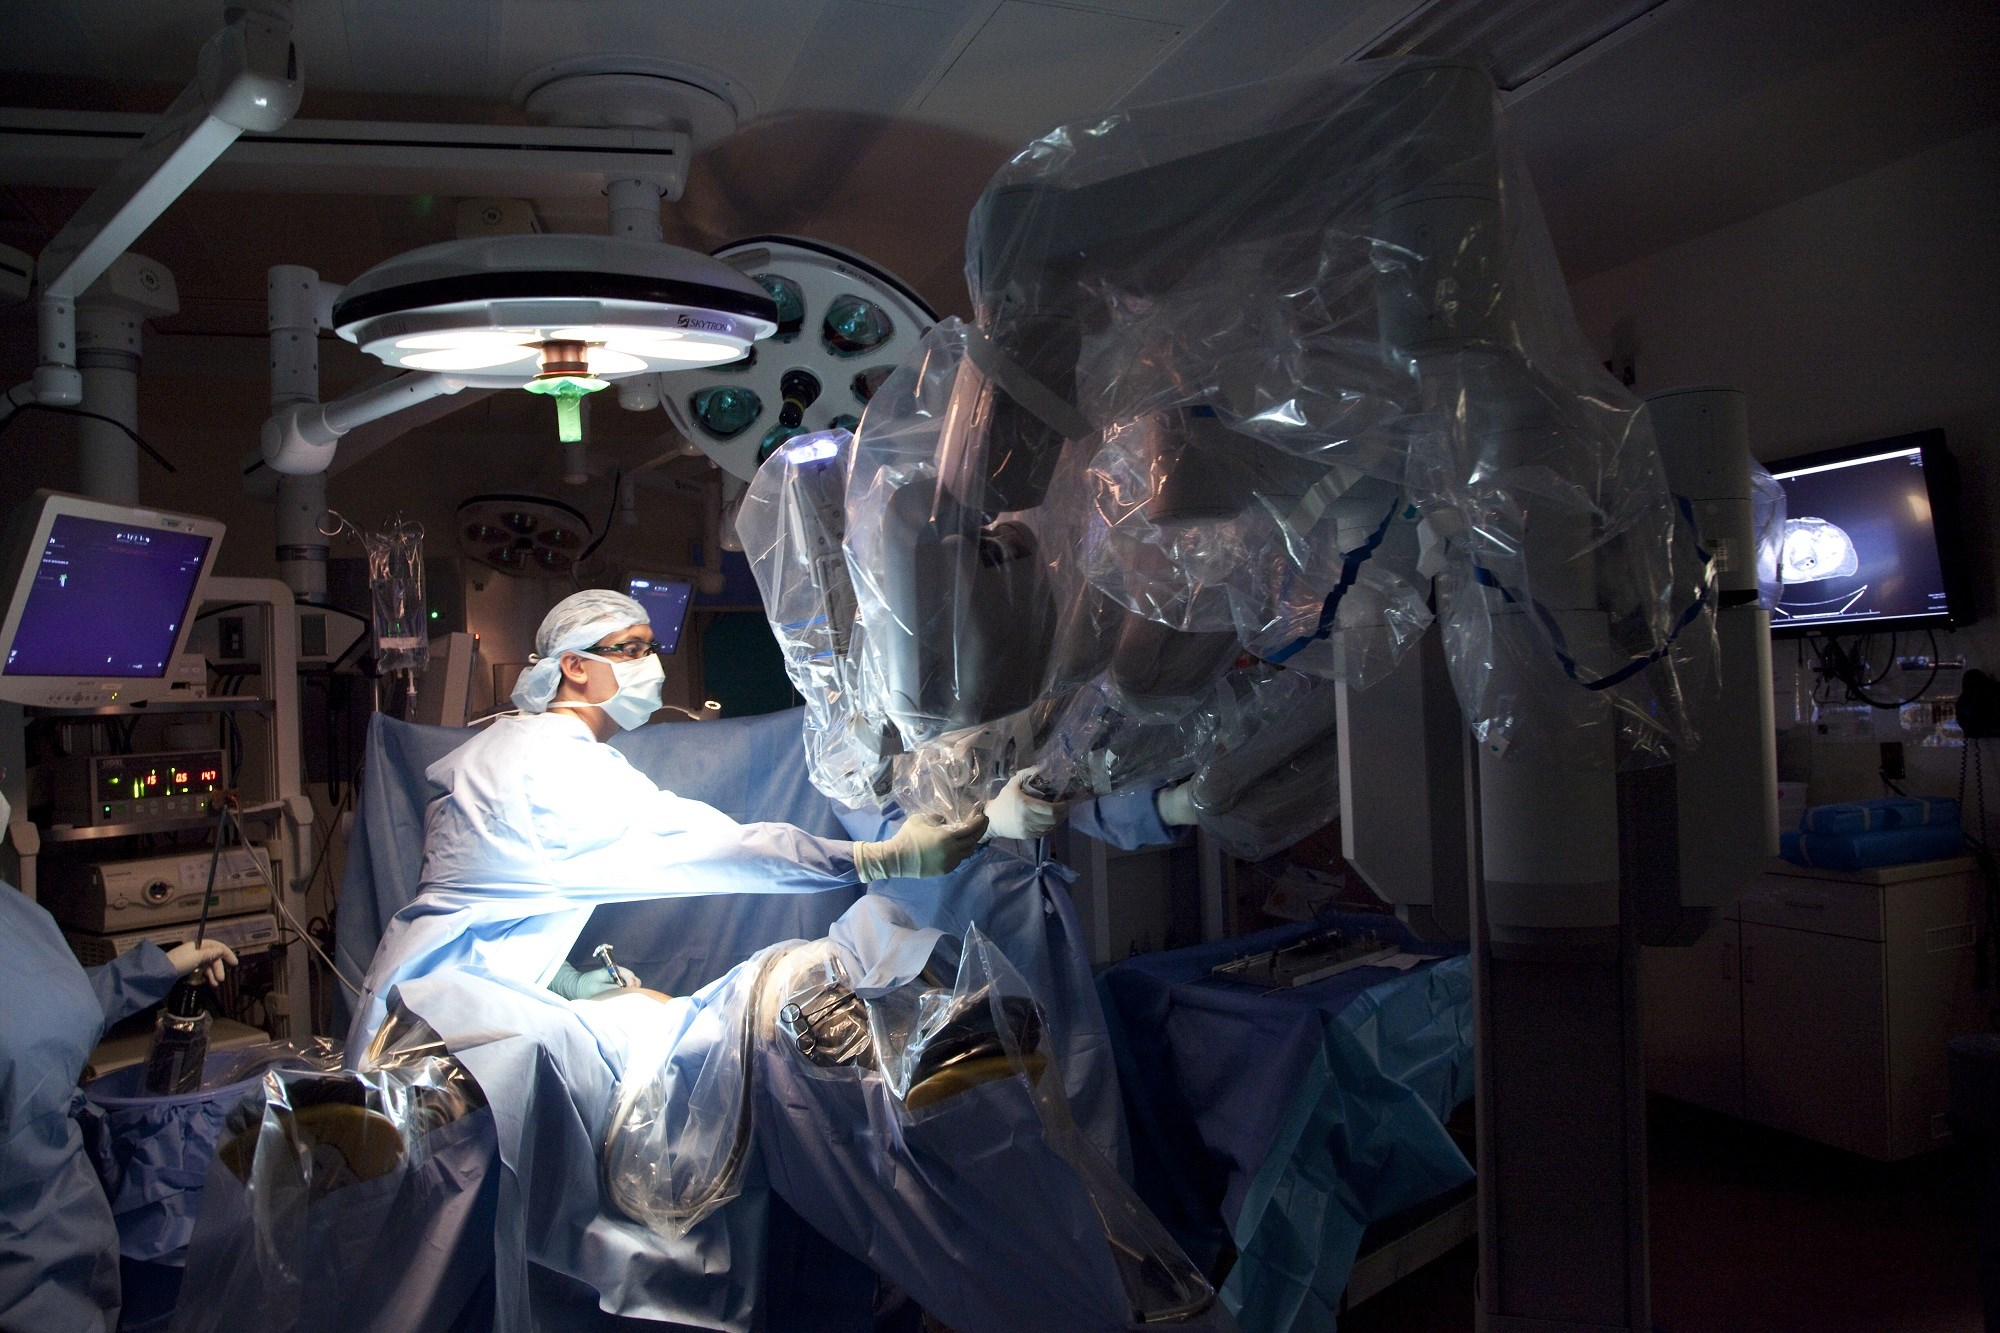 Celecoxib Offers Pain Relief Comparable to Ketorolac After Robotic Hysterectomy